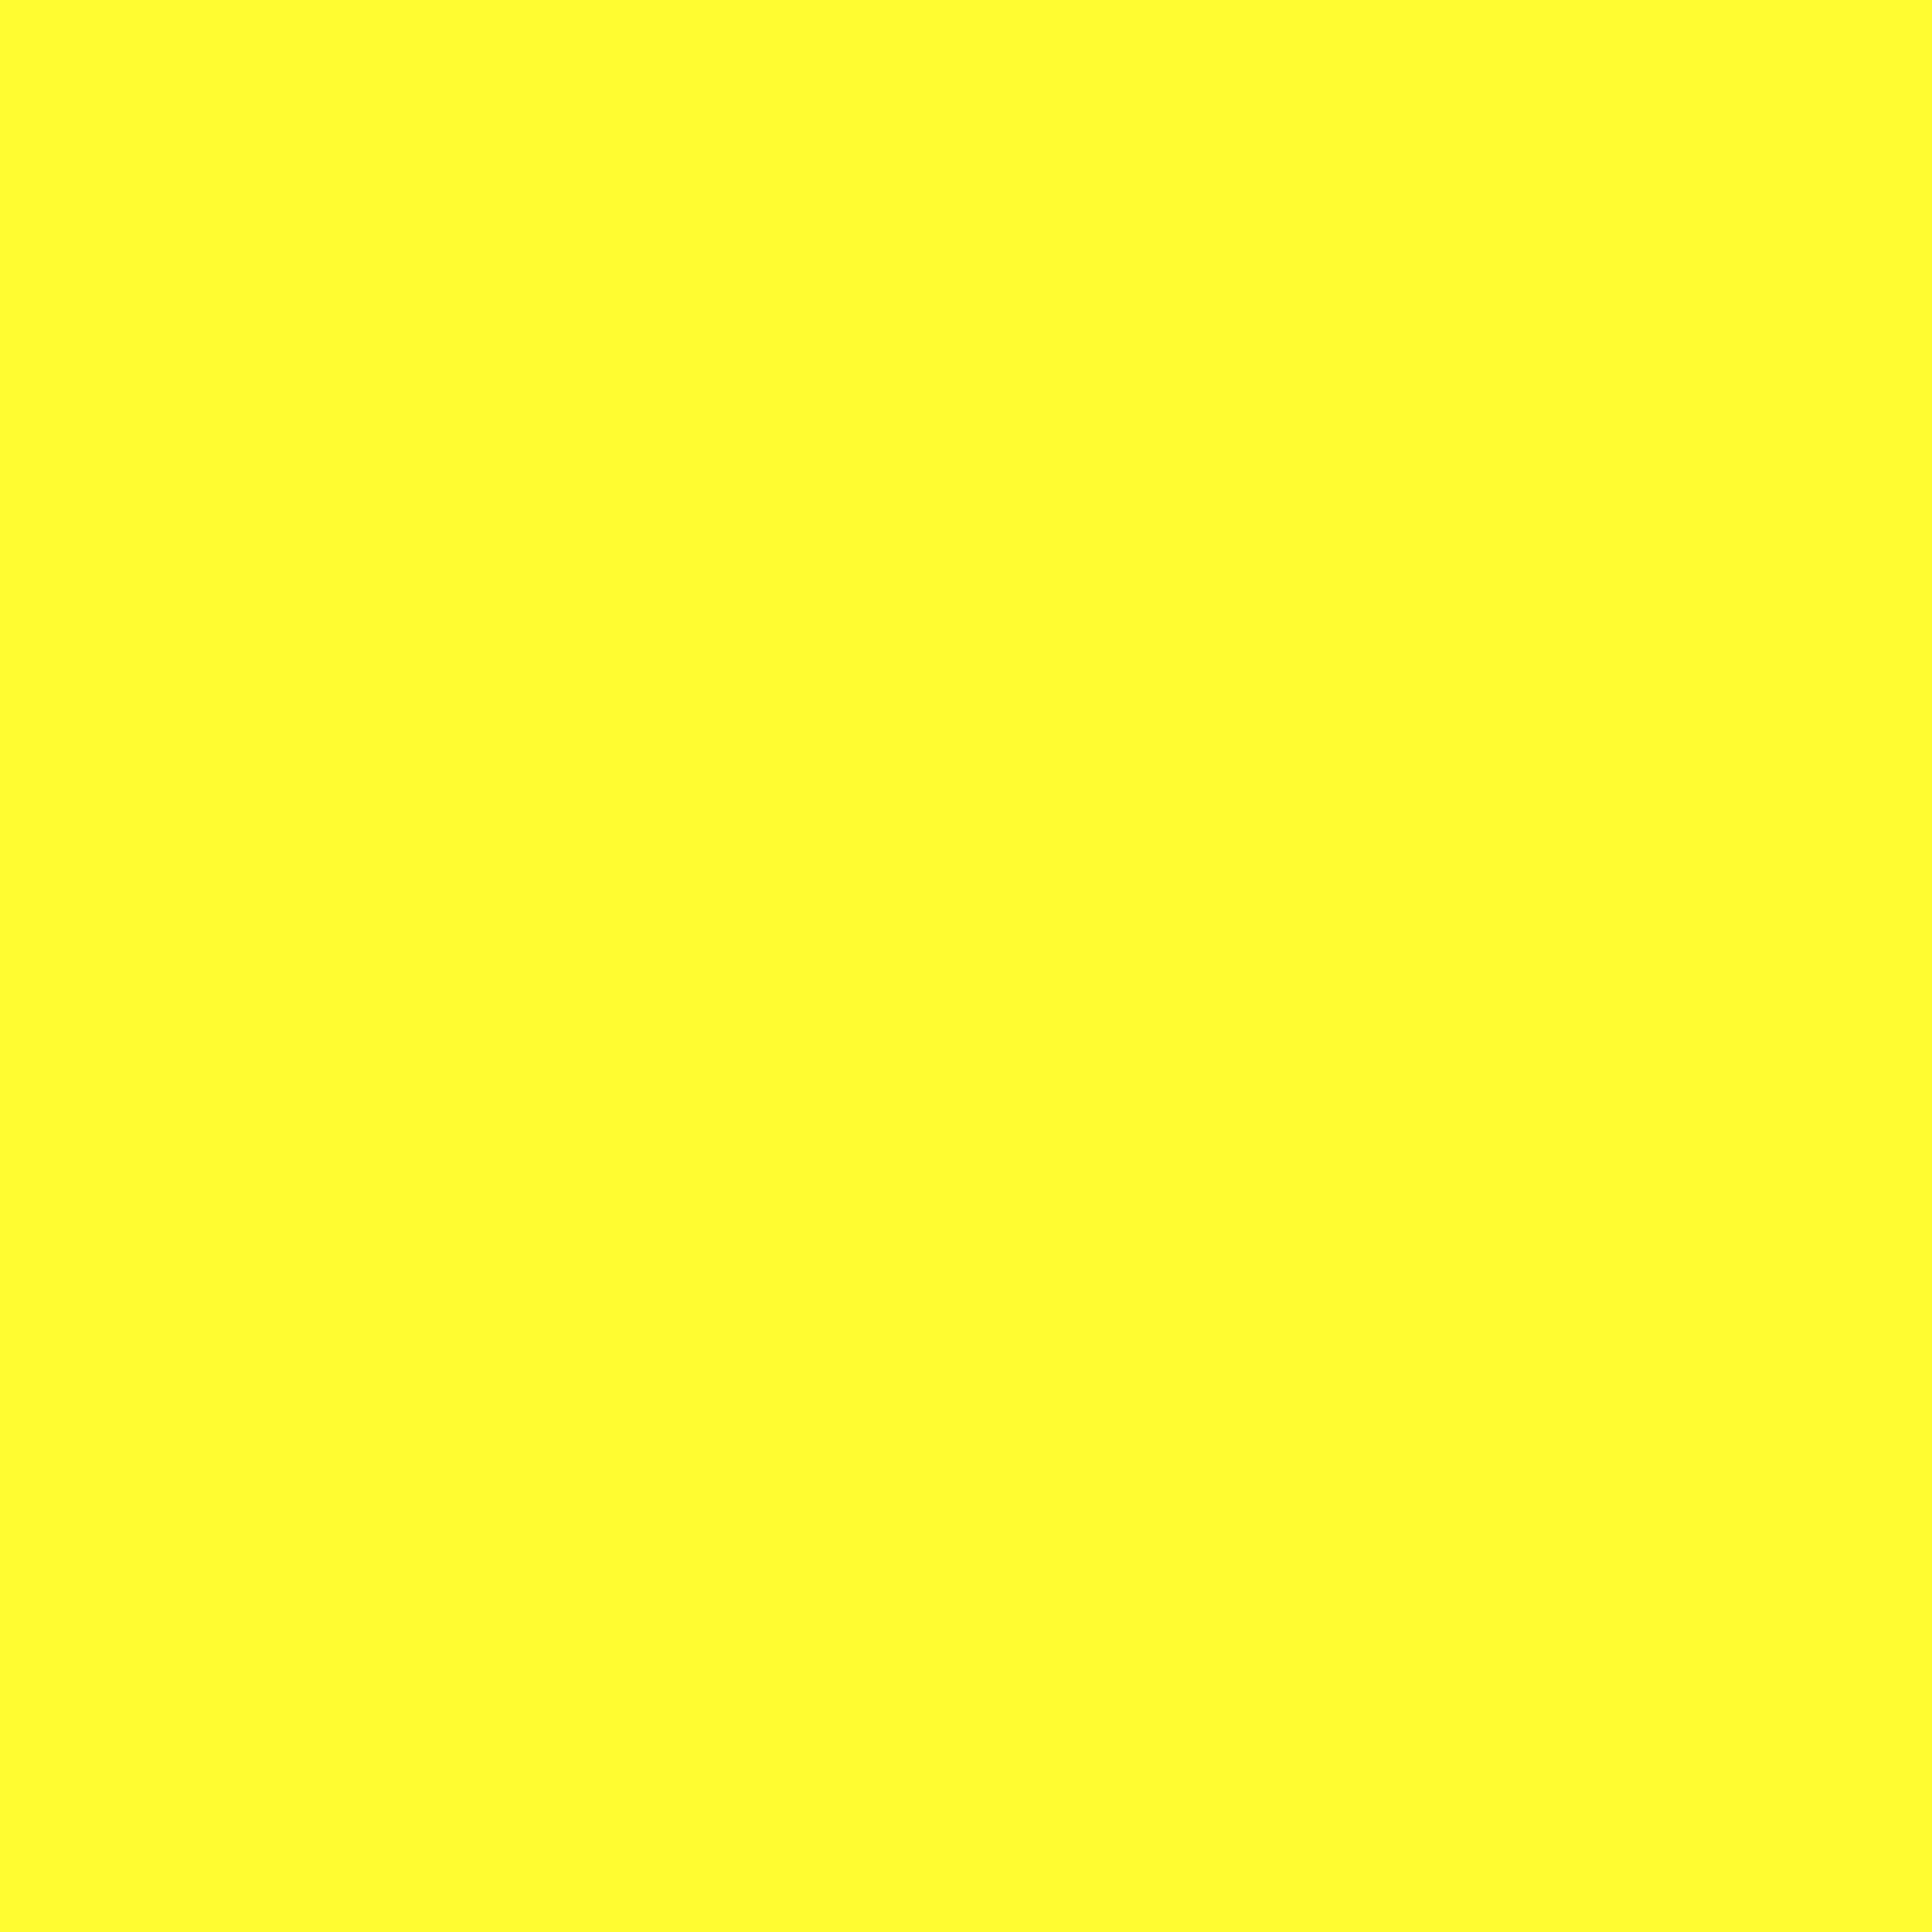 2732x2732 Yellow RYB Solid Color Background